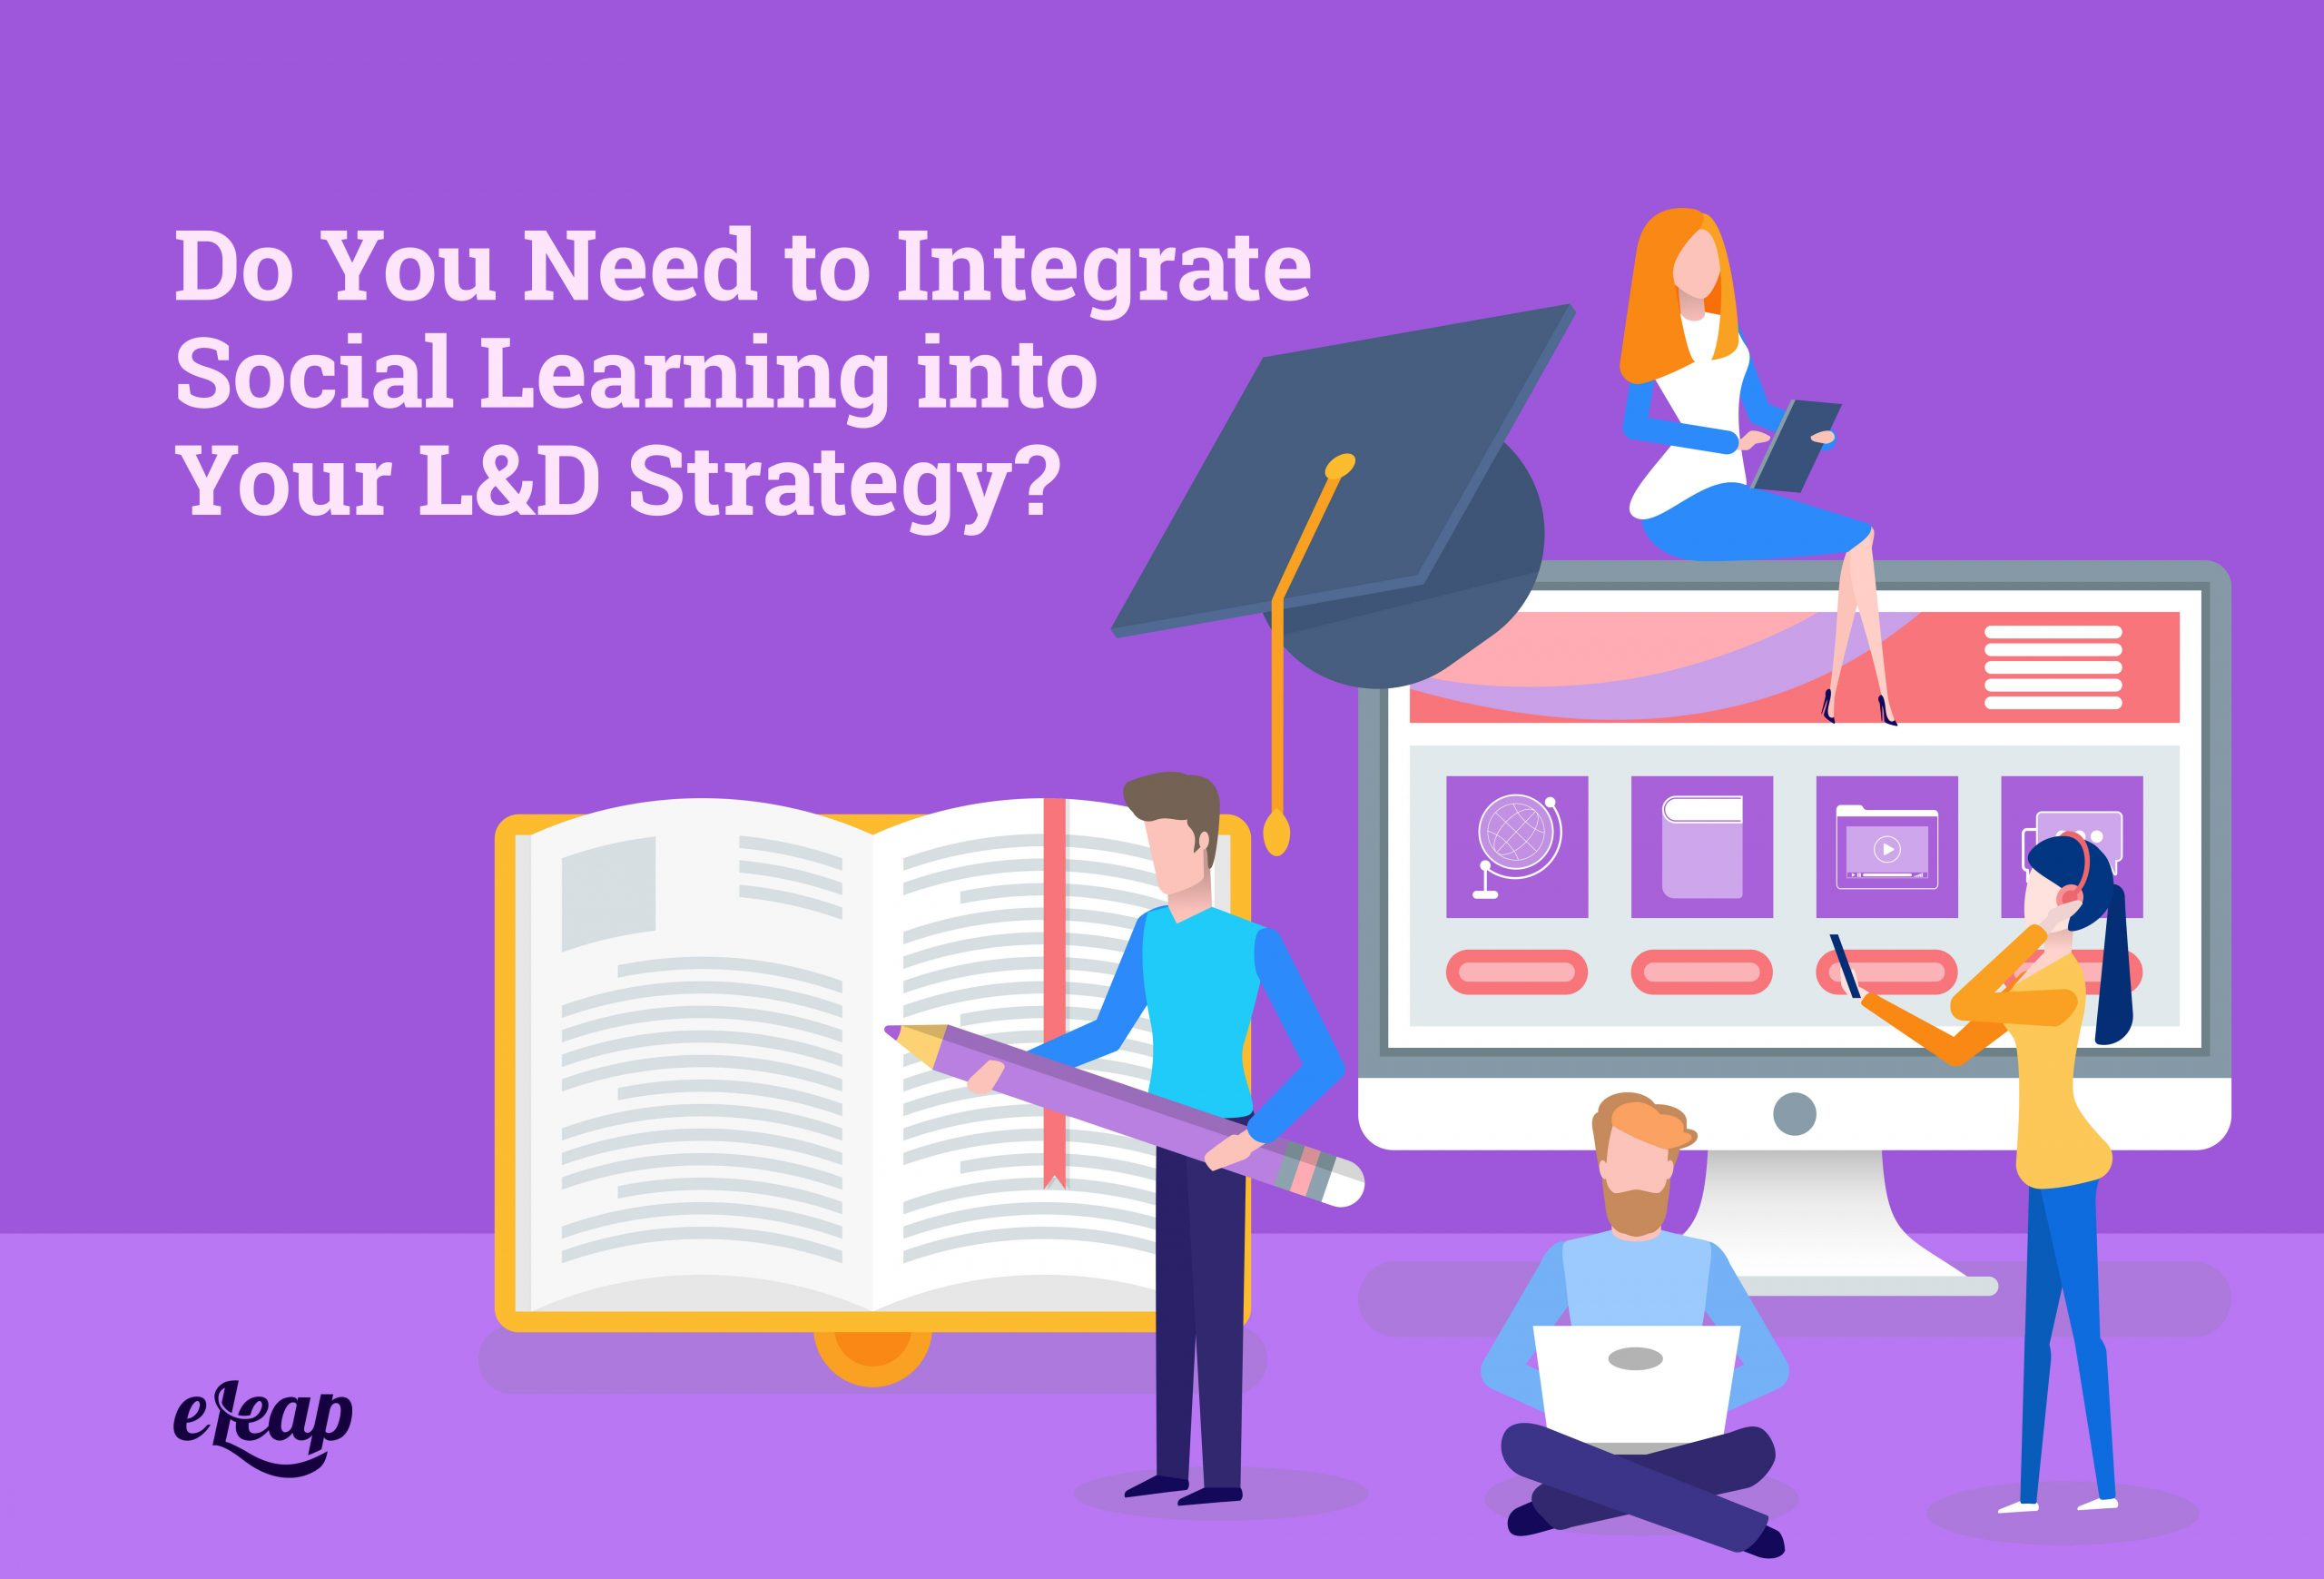 Do You Need to Integrate Social Learning into Your L&D Strategy?